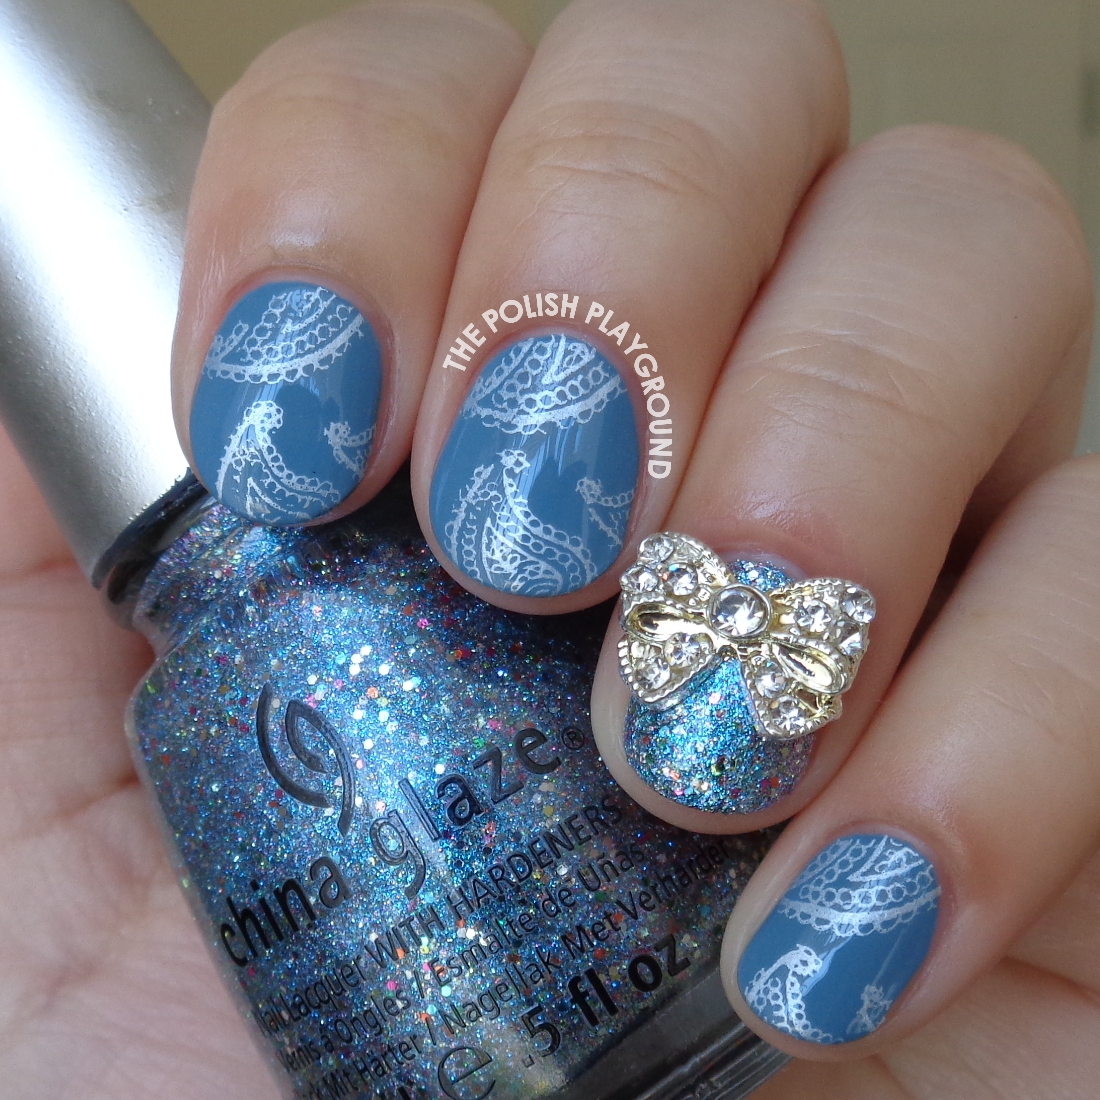 The Polish Playground: Blue And Silver Paisley Print